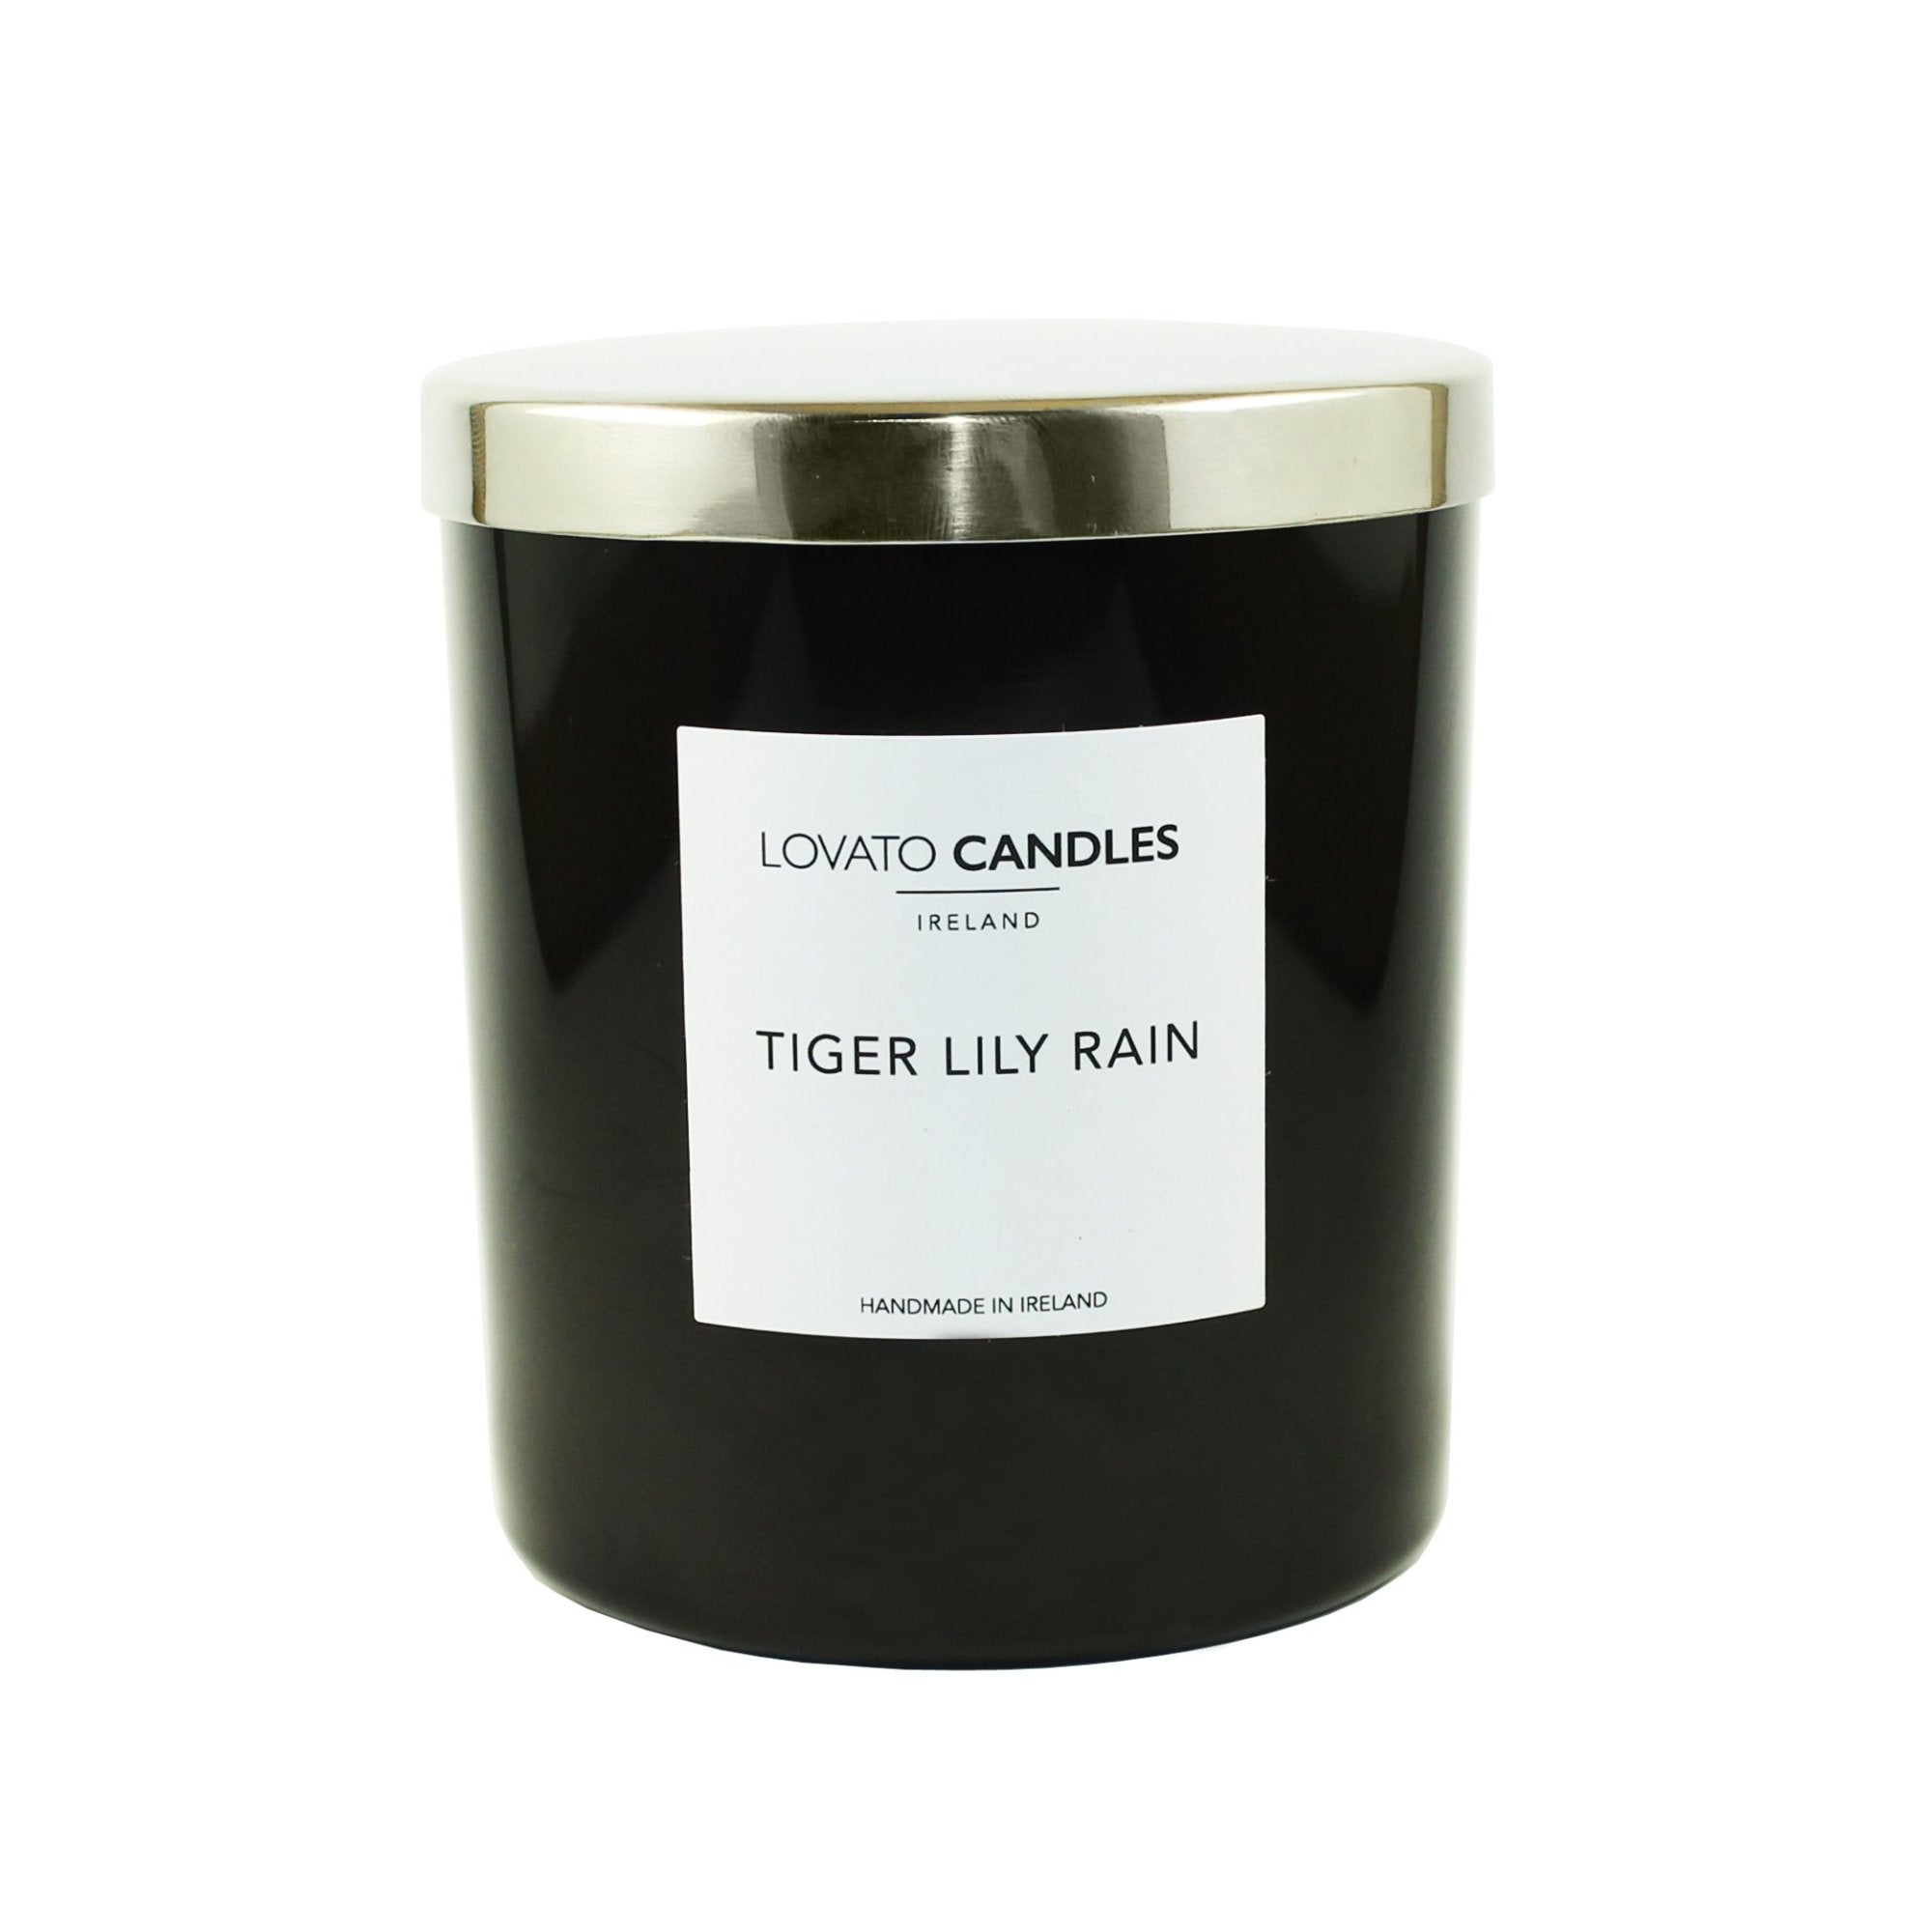 Luxury Black Candle - Tiger Lily Rain - Lovato Candles